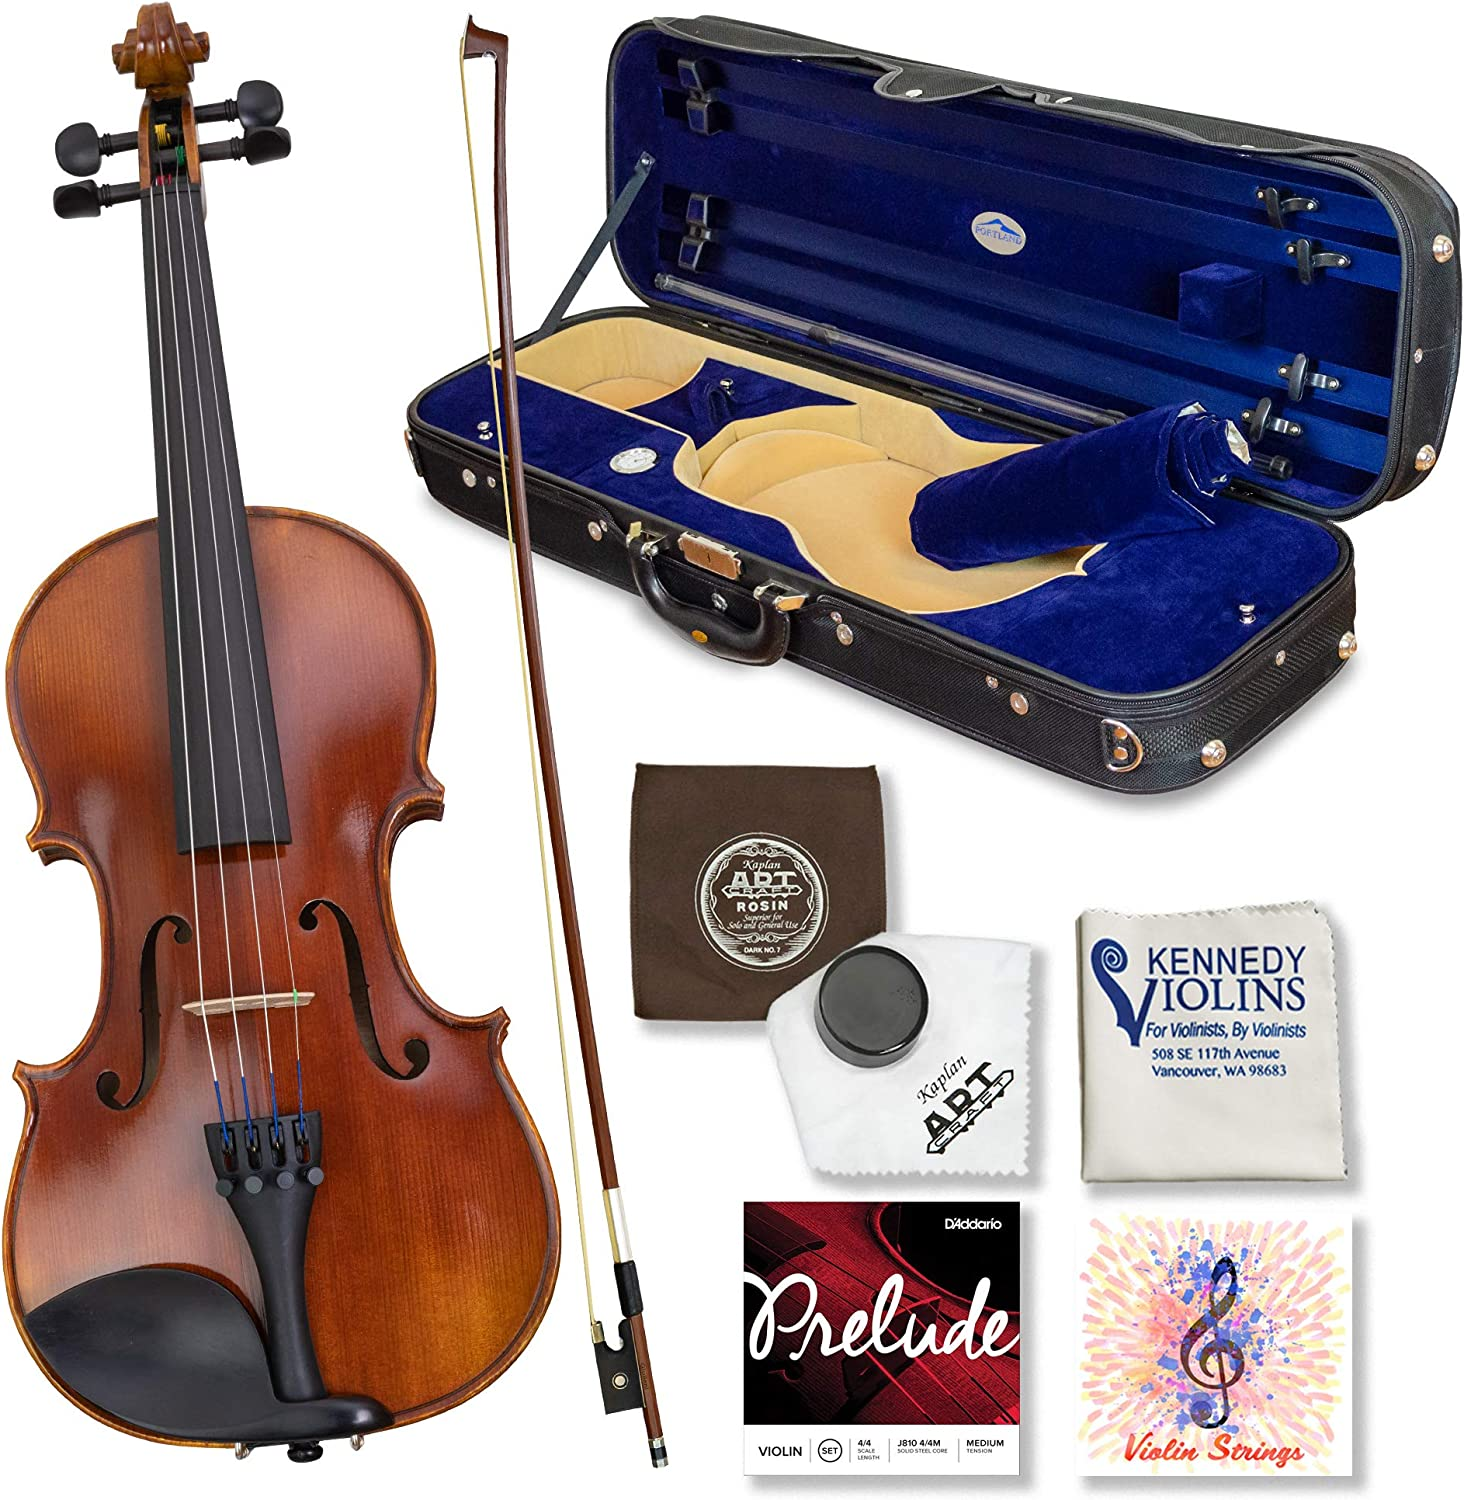 Louis Carpini G2 Violin Outfit 1/2 Size – Carrying Case and Accessories Included – Highest Quality Solid Maple Wood and Ebony Fittings By Kennedy Violins